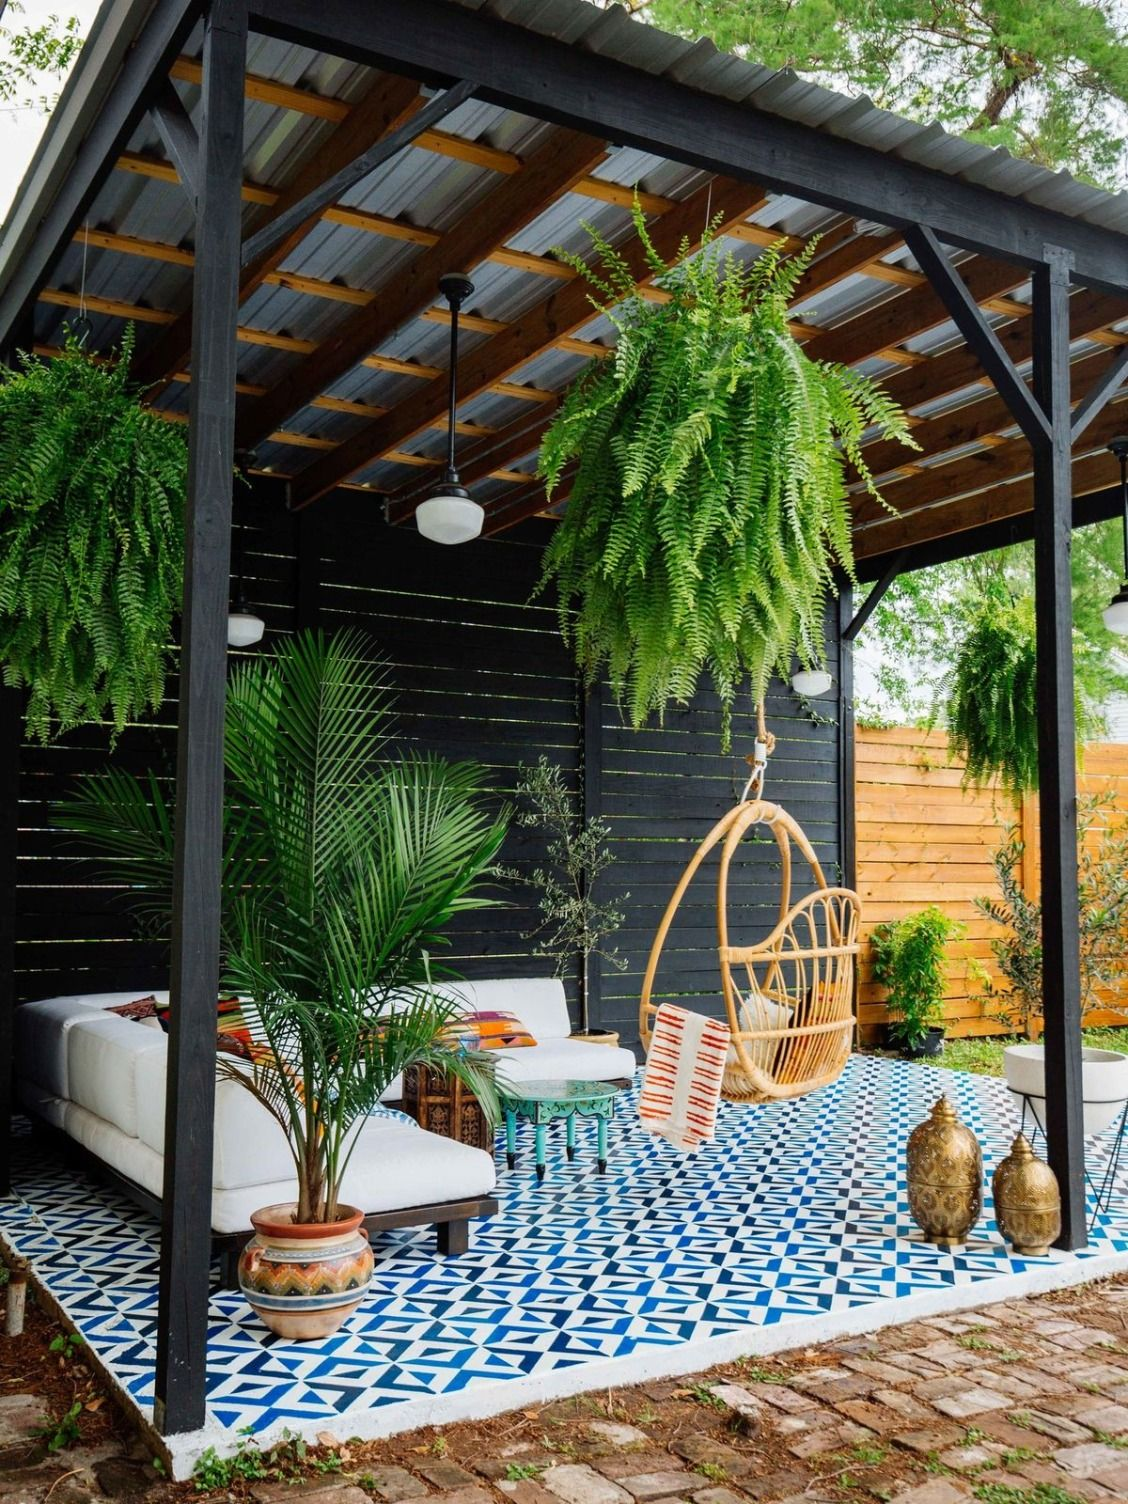 Patio diy painted floor tiles painted floor tiles stencil painted floor tiles elevate this covered patio check out the stencil design and diy details dailygadgetfo Image collections